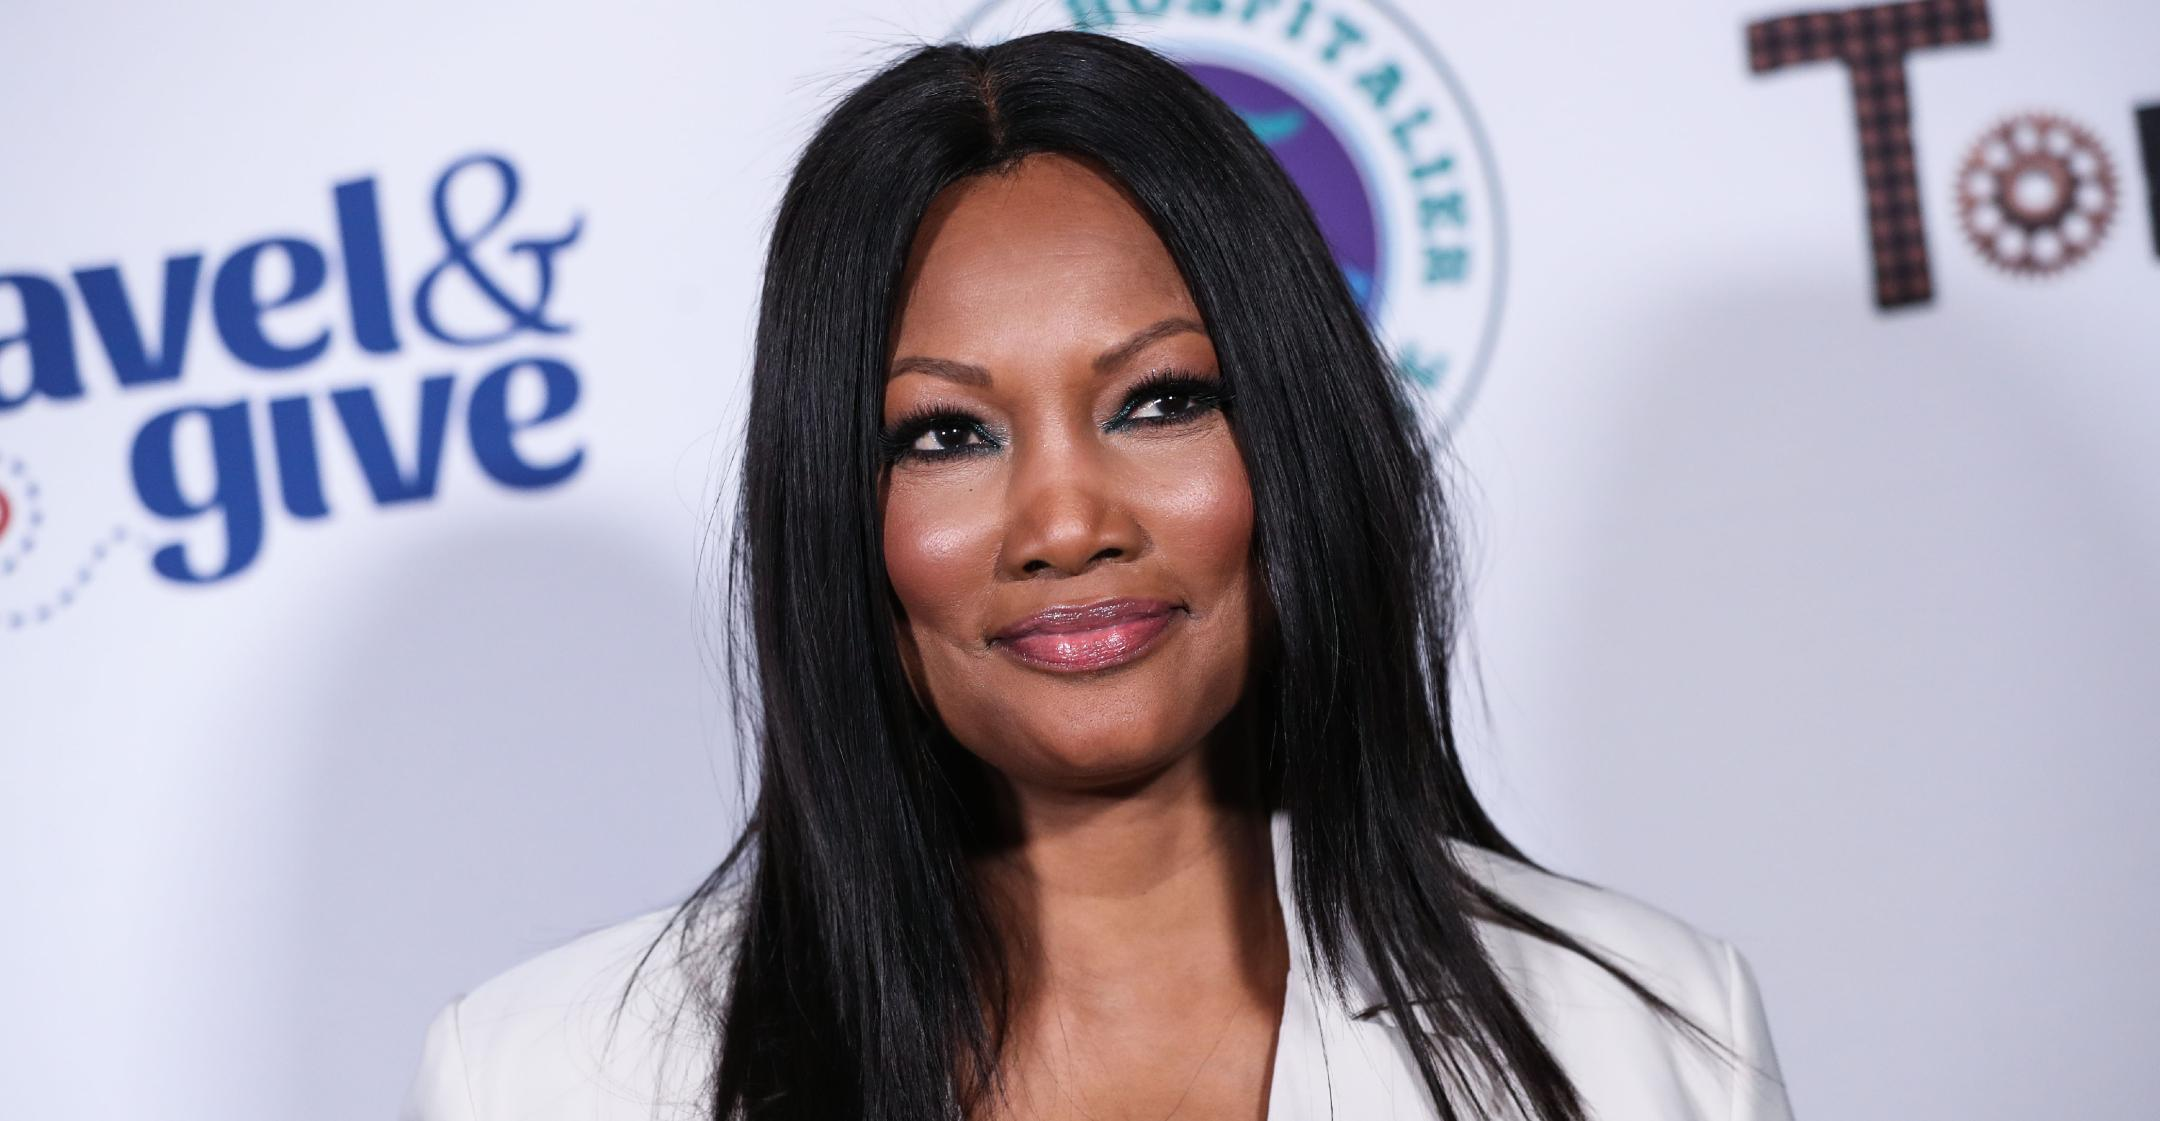 garcelle beauvais memoir love me as i am get to know her better